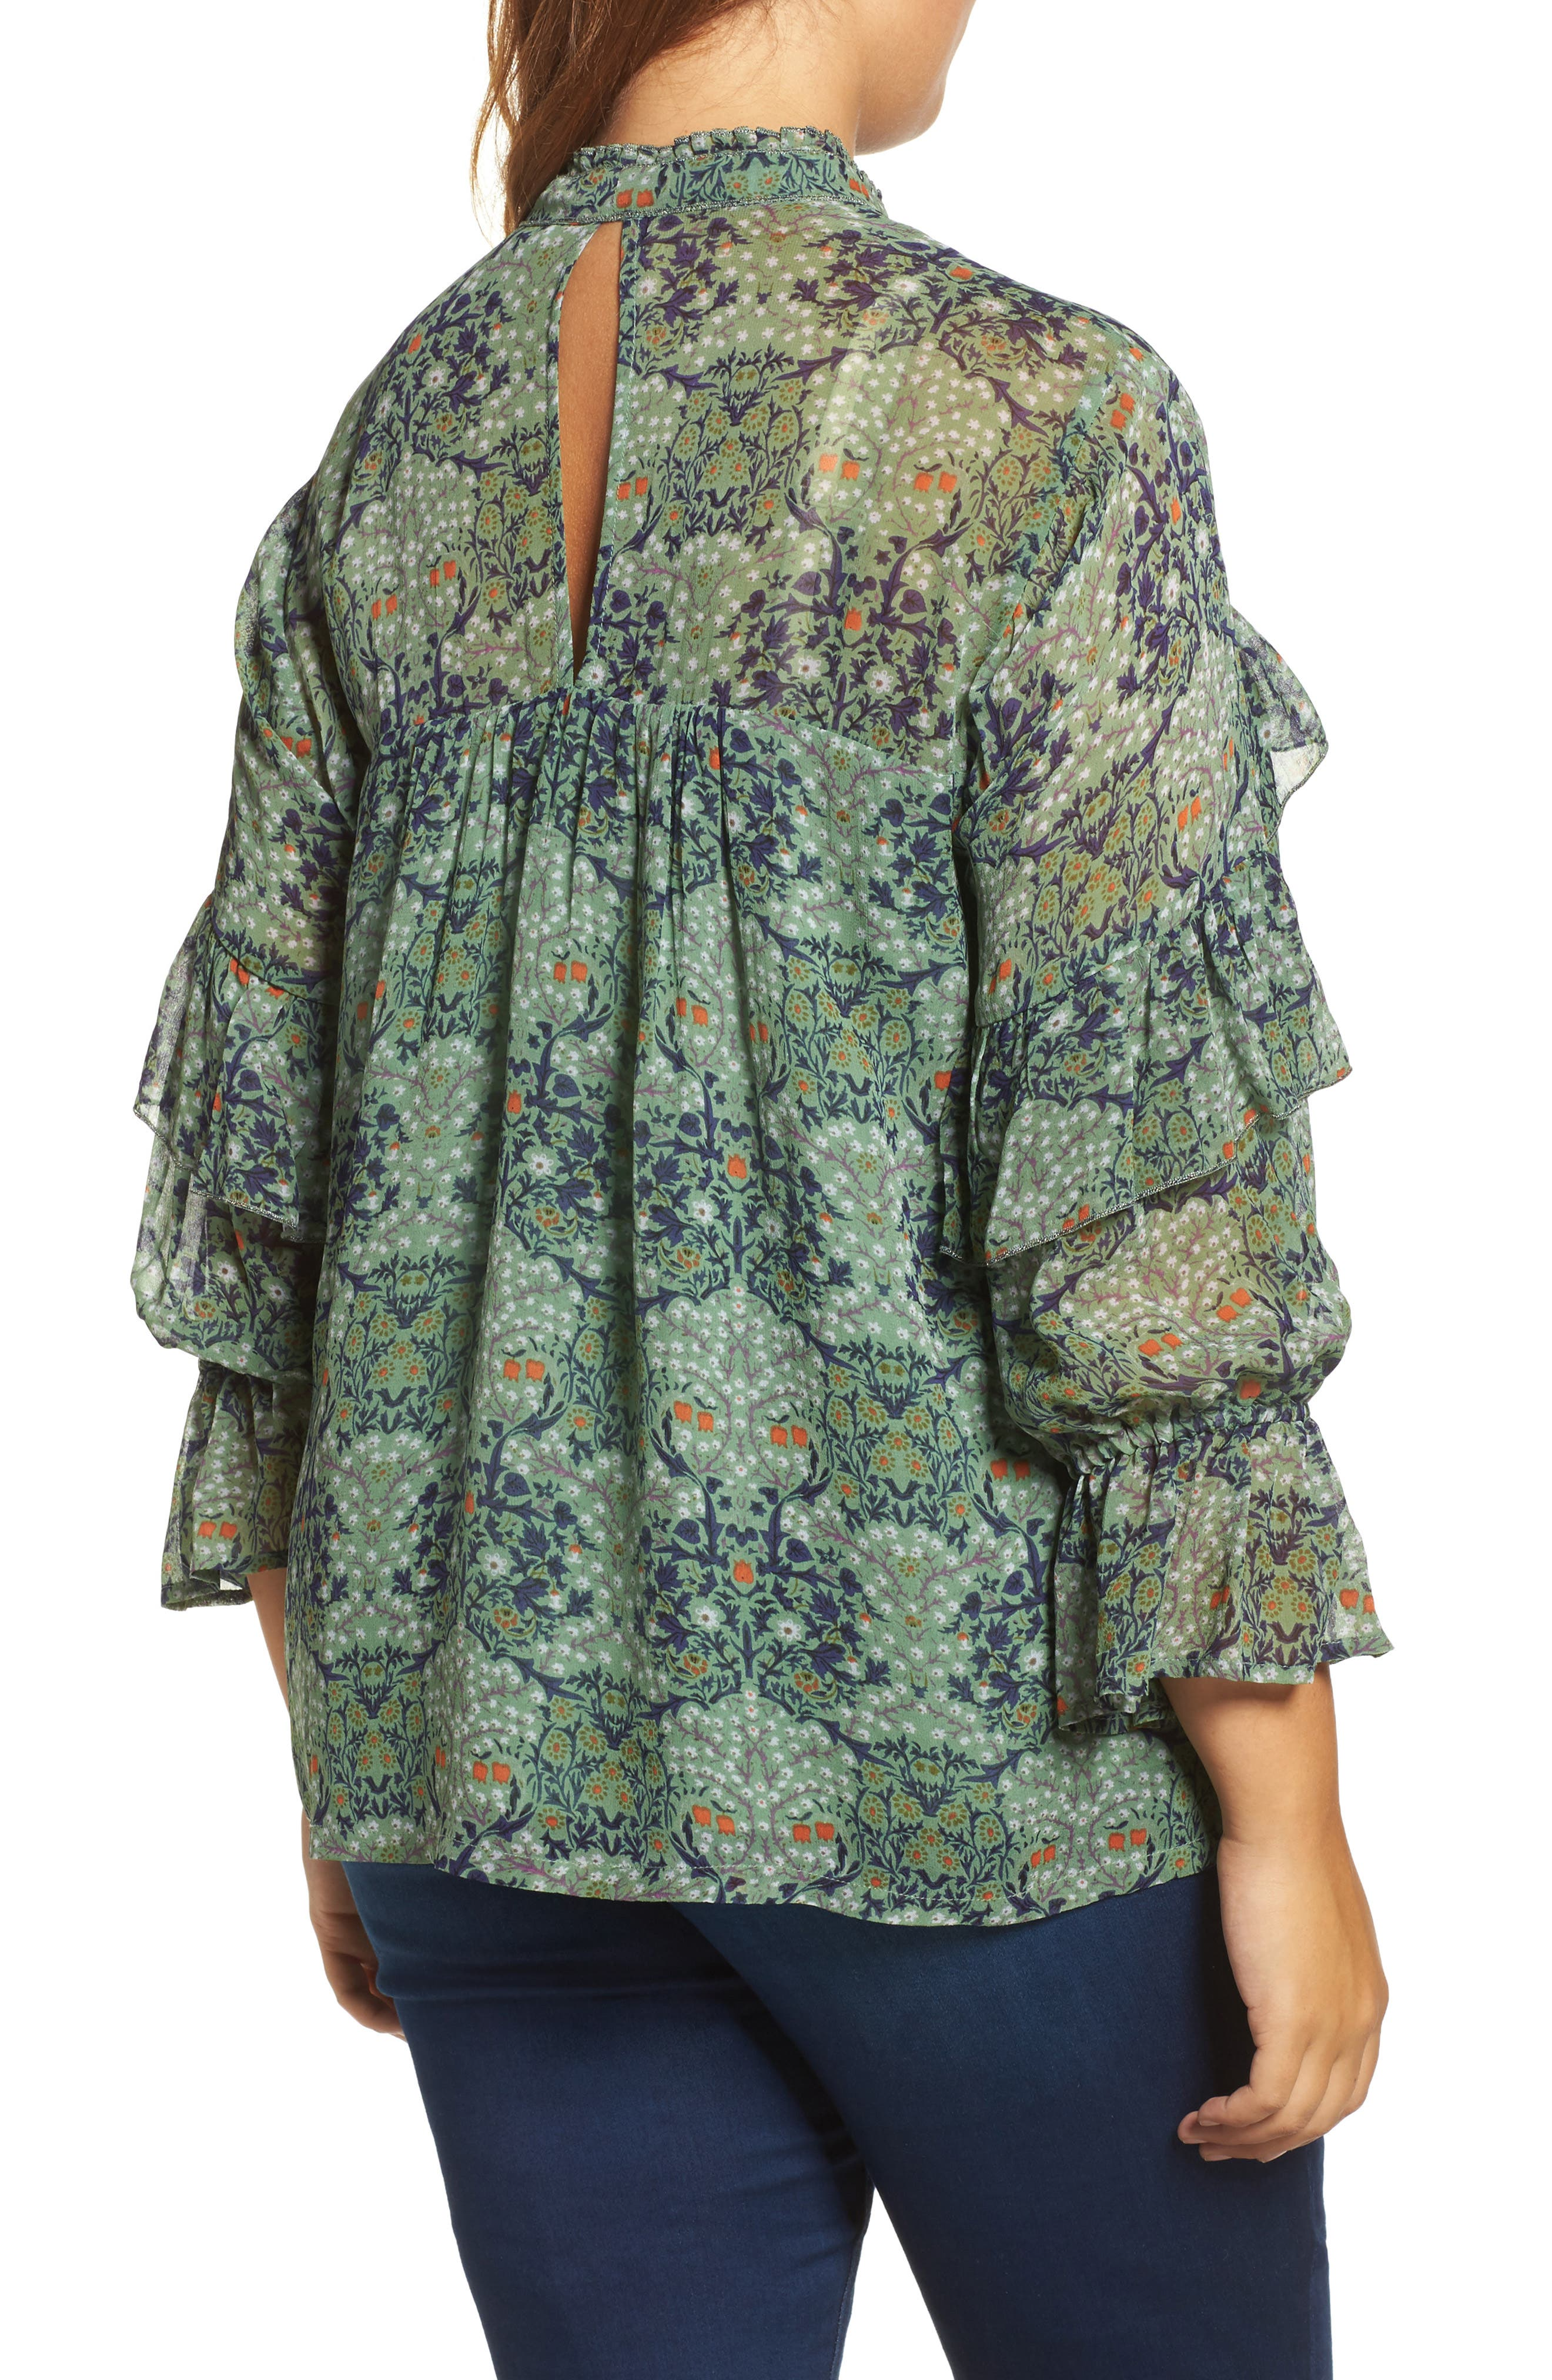 Ruffled Floral Blouse,                             Alternate thumbnail 2, color,                             Green Multi